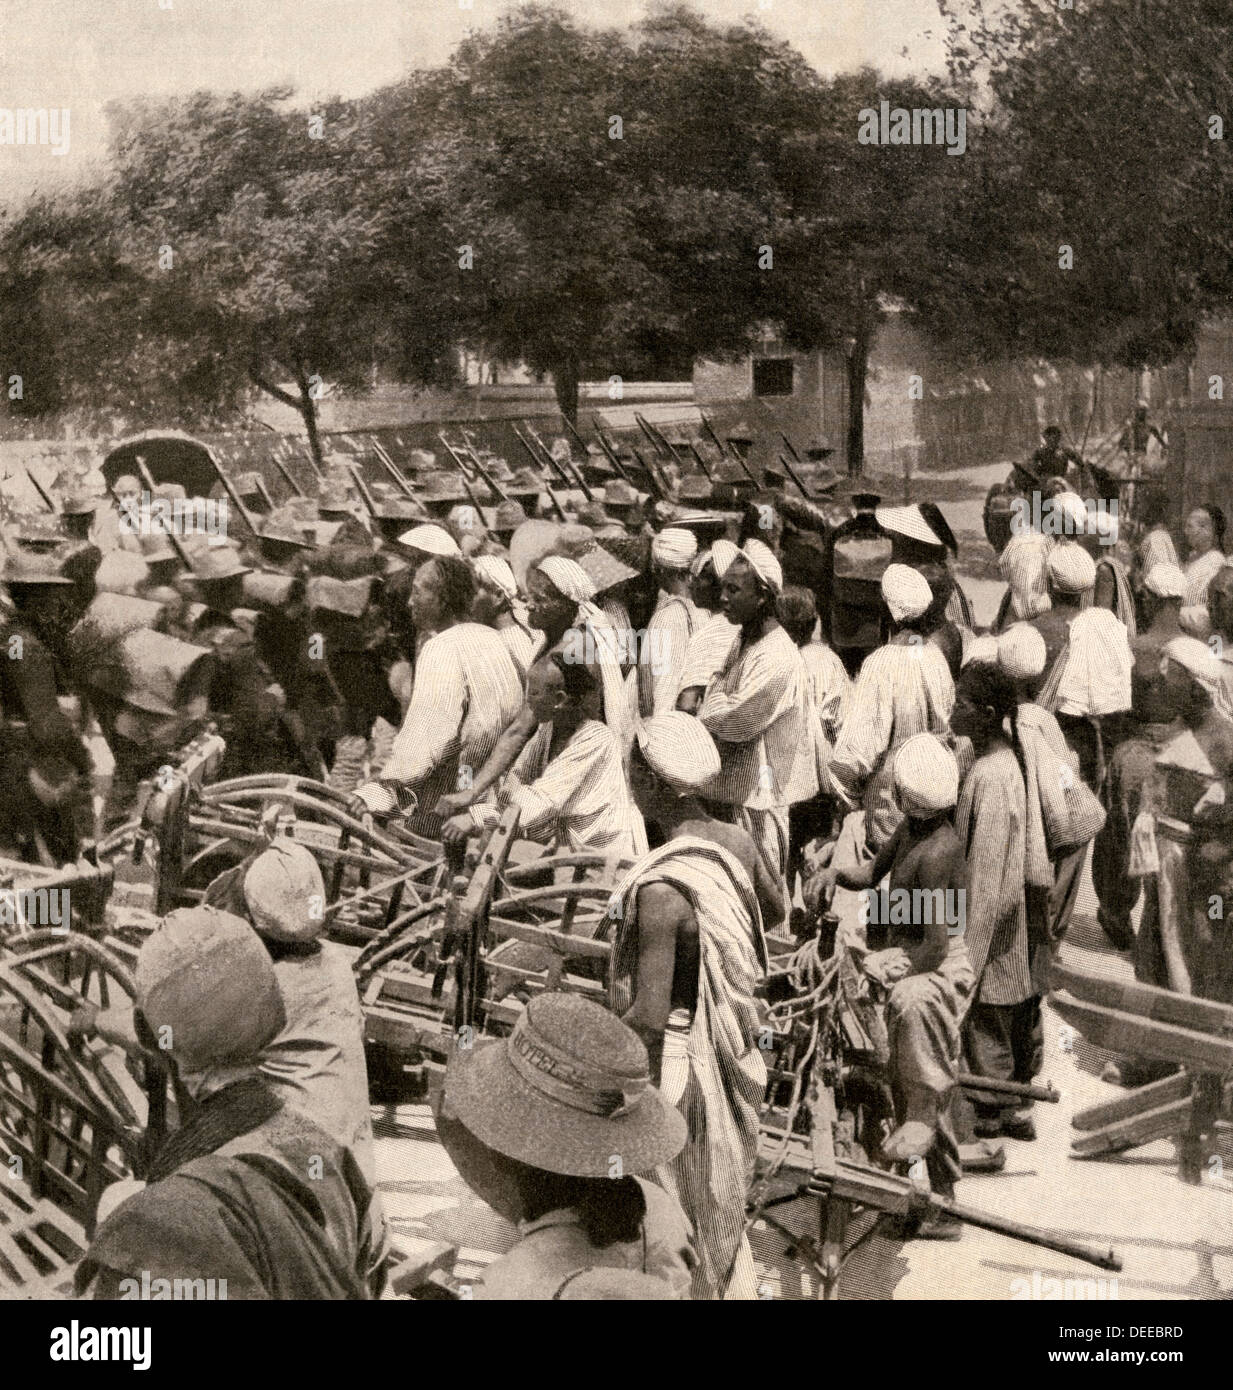 American Marines entering Tientsin, China, during the Boxer Rebellion, 1900. Halftone reproduction of a photograph - Stock Image